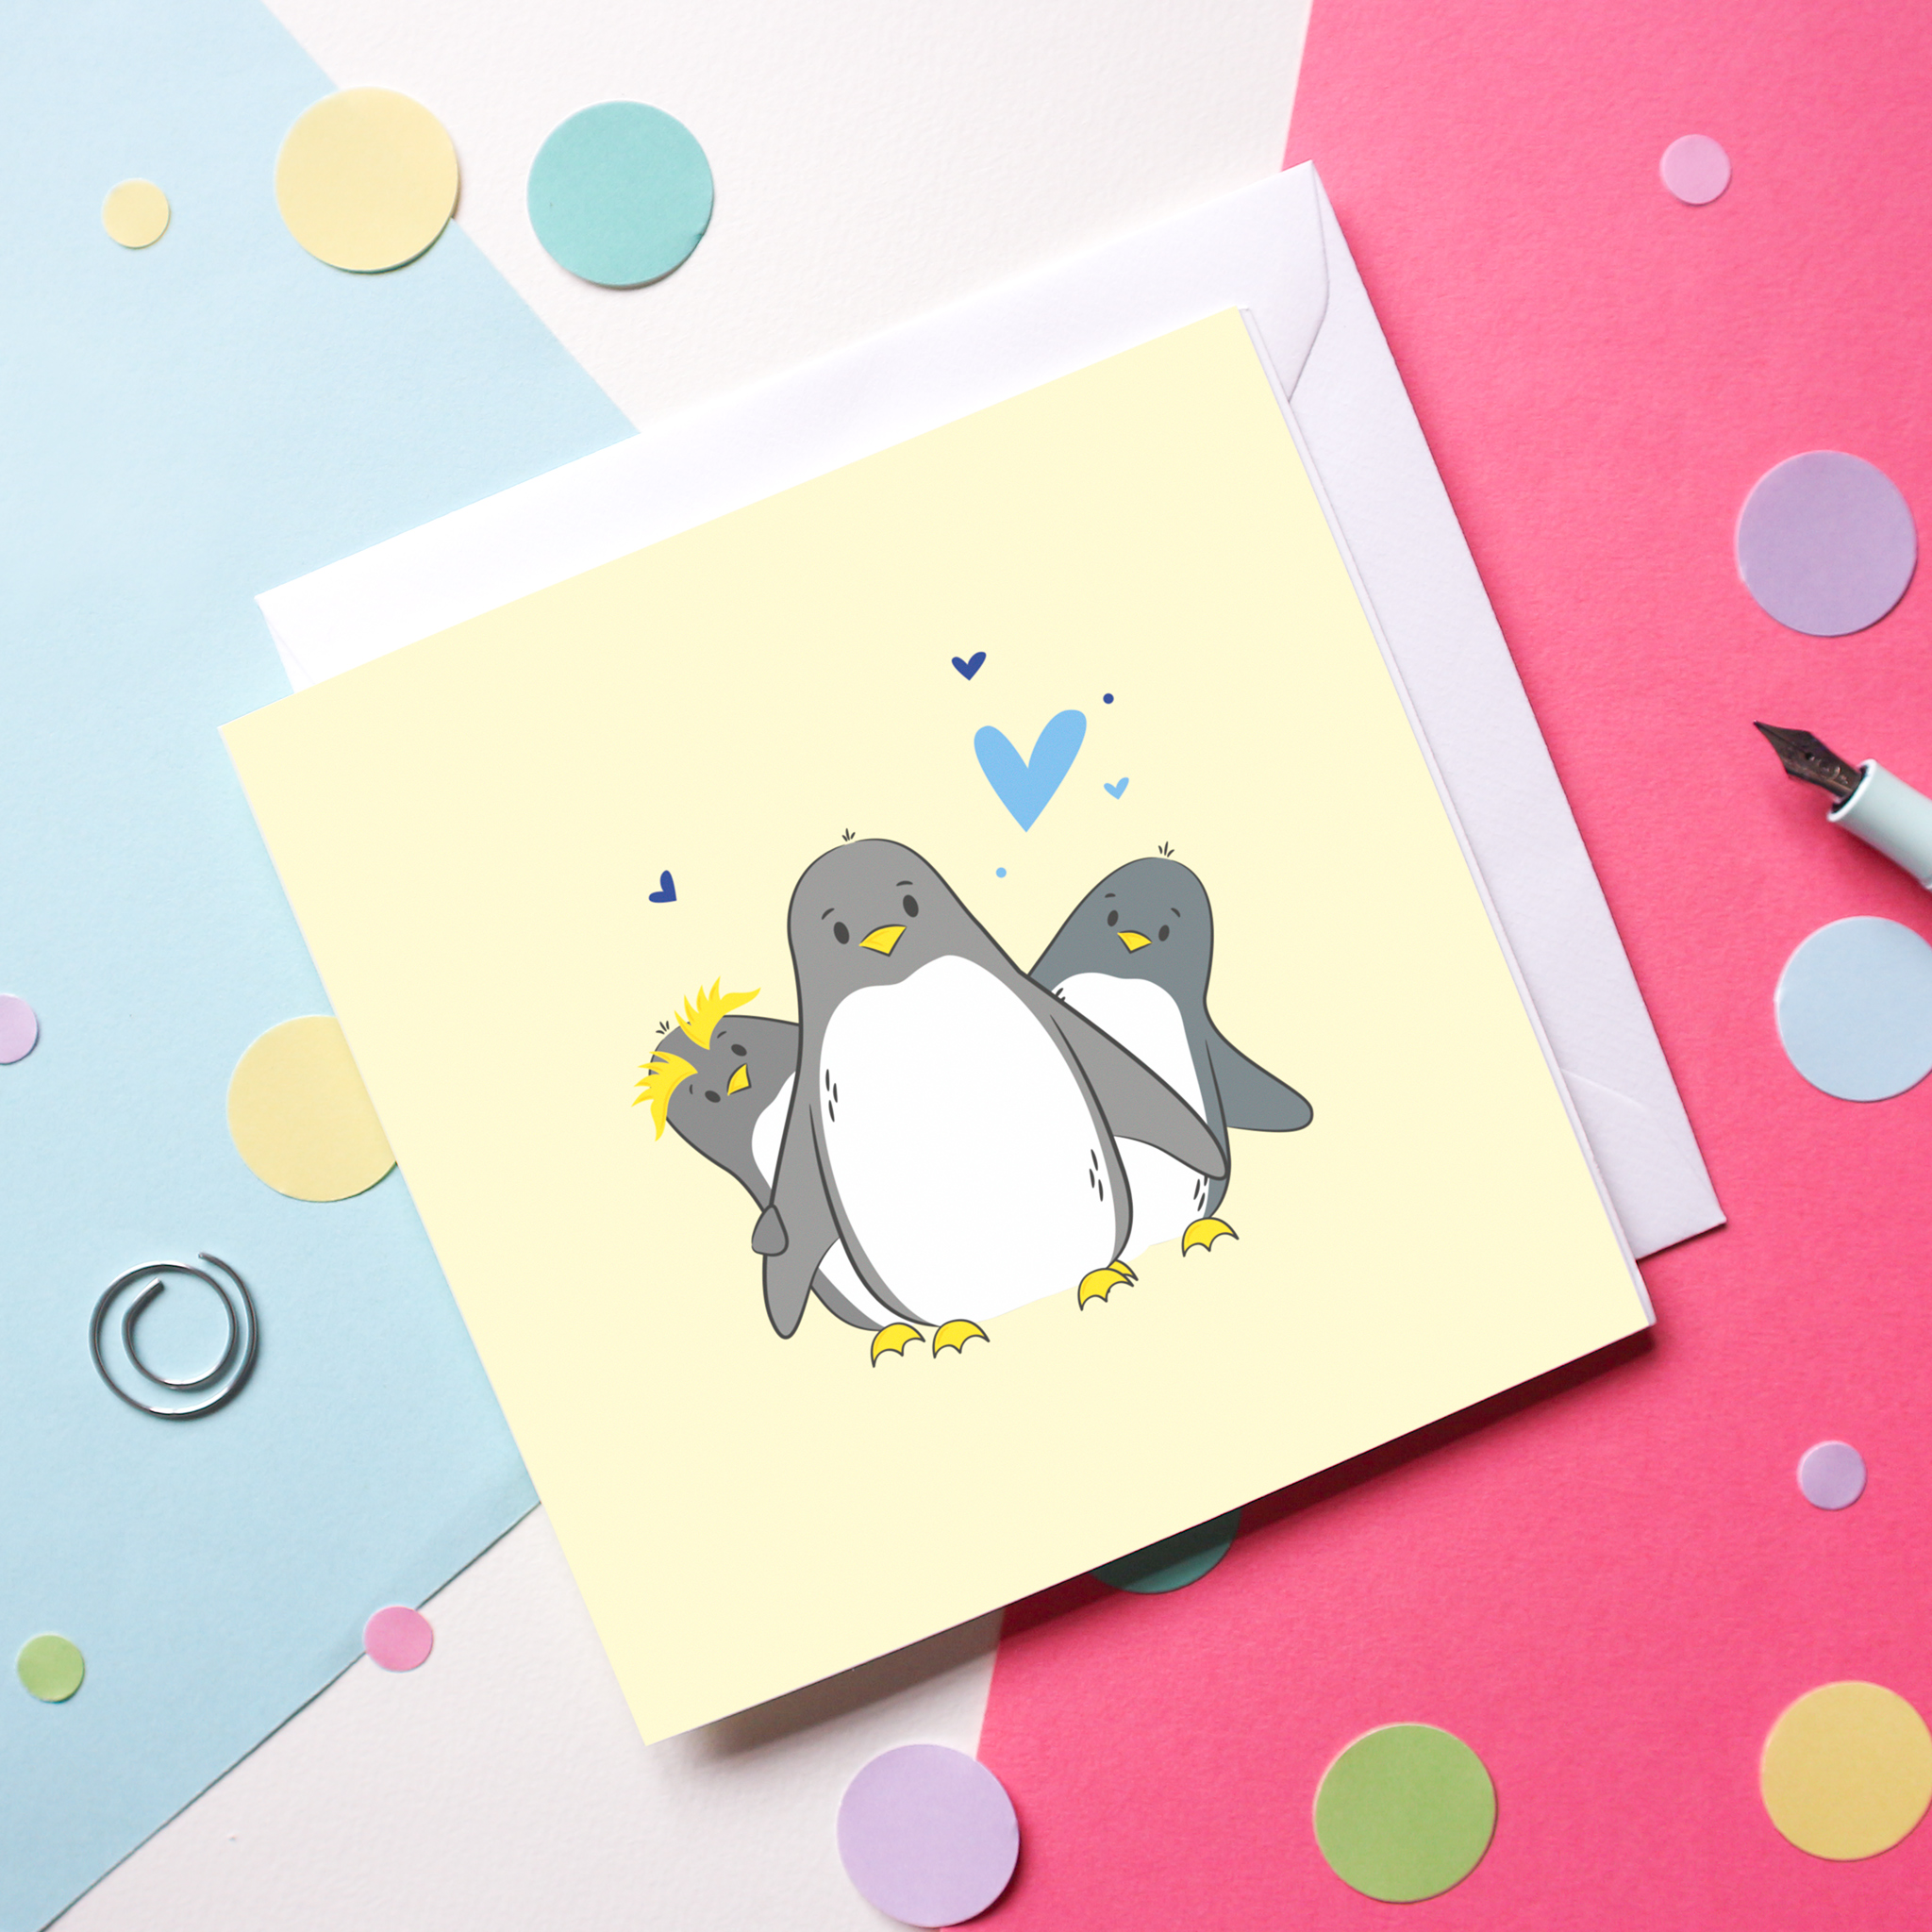 An image of an illustrated penguin mother's day card. The card shows an adult penguin with 2 smaller penguins either side, surrounded by blue hearts, set on a pale yellow background. The card is set on a colourful background with colourful confetti.